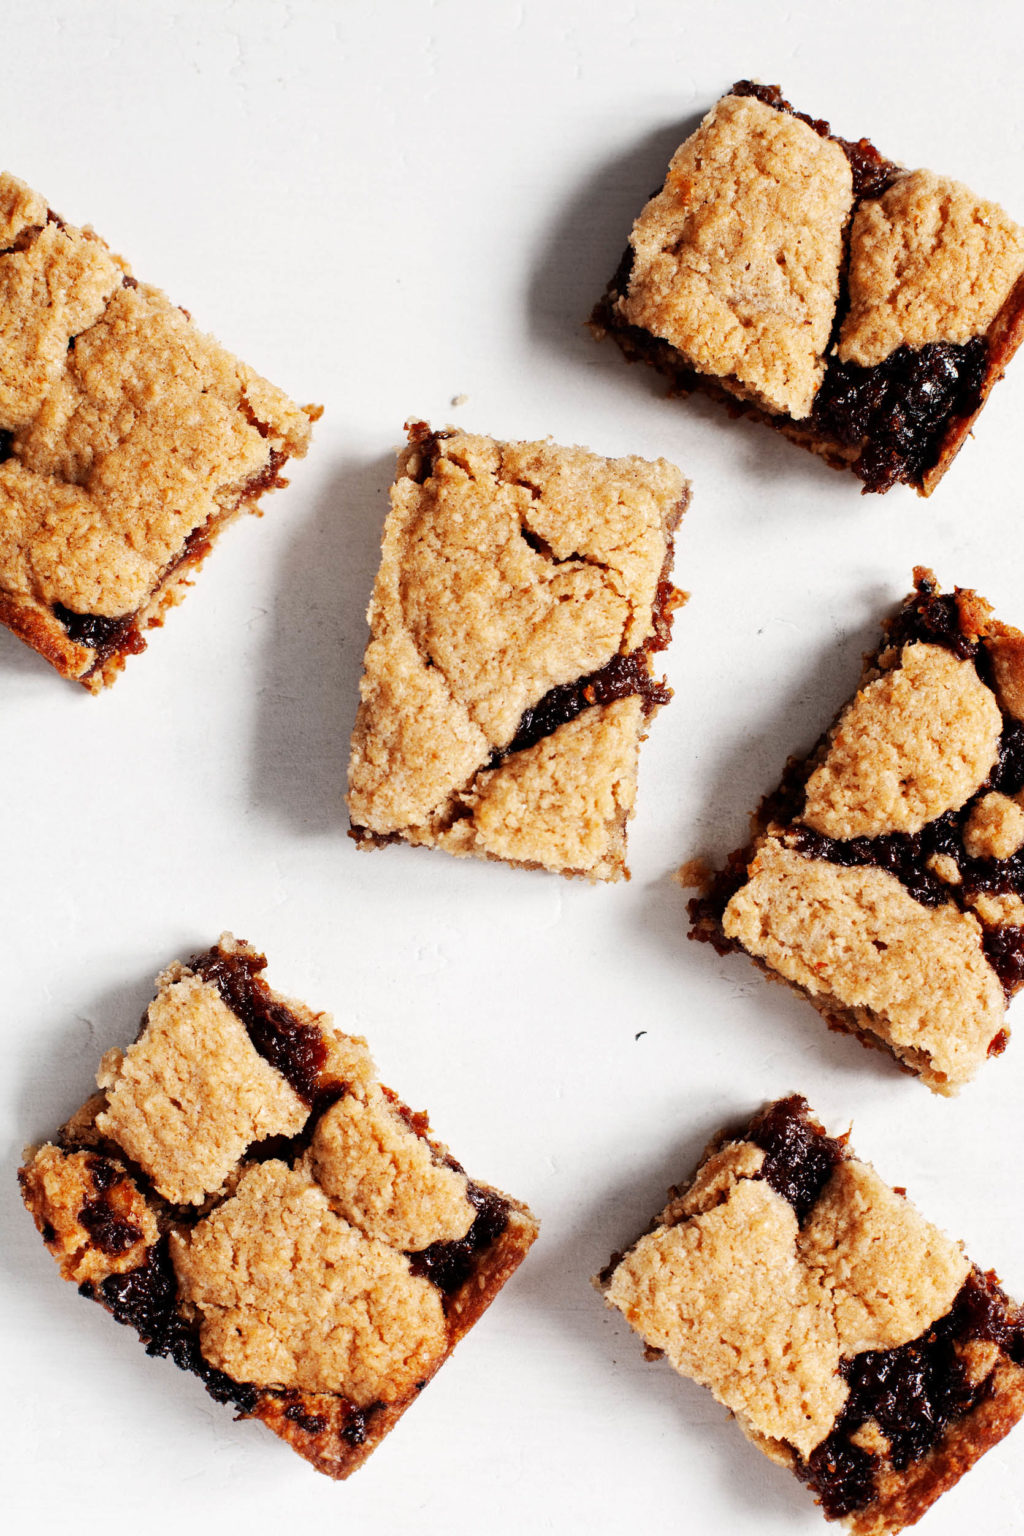 Freshly baked, whole wheat raisin bars are laid out on a bright white surface.